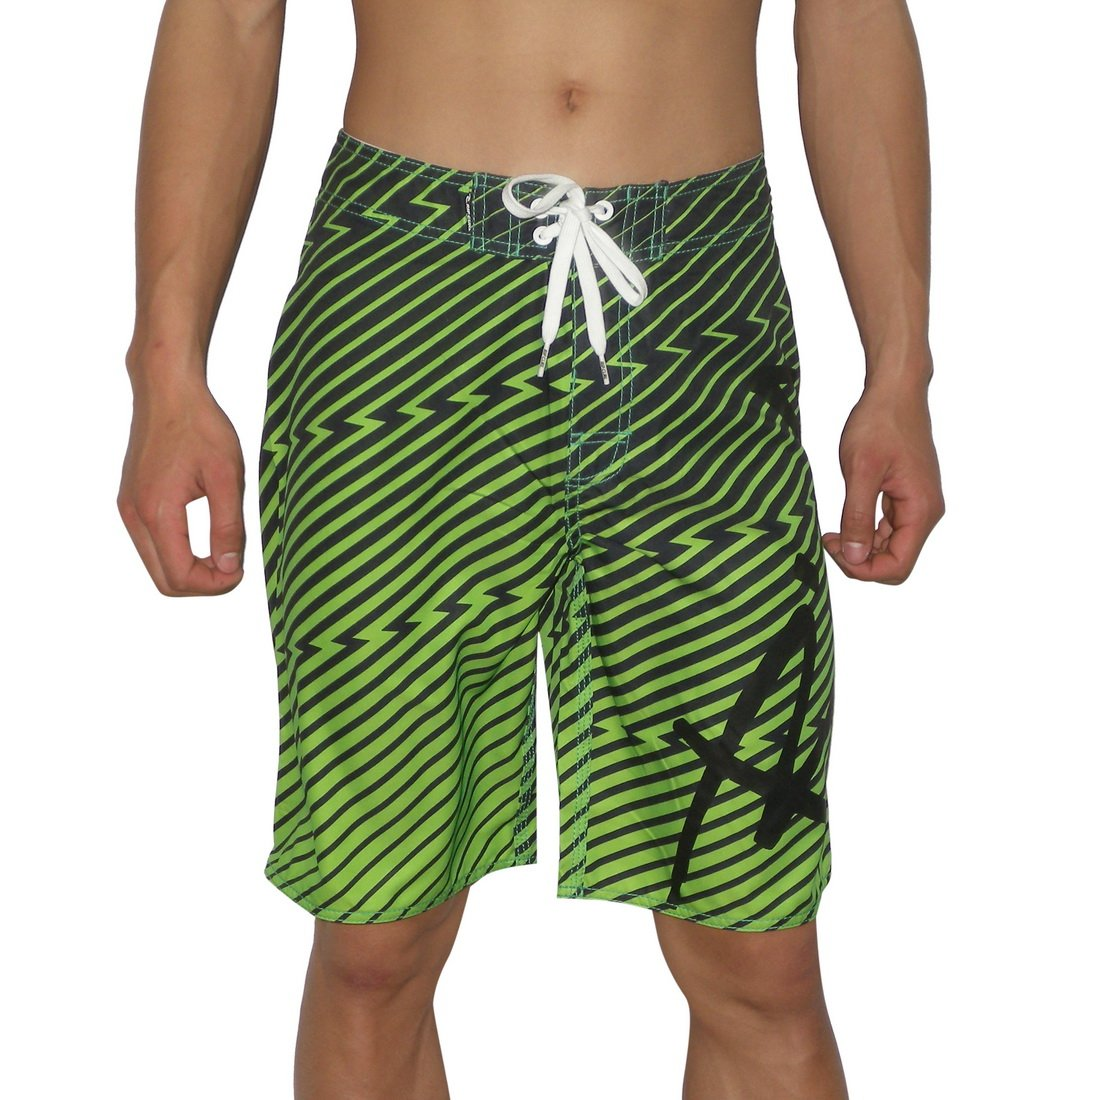 0f34e3b7ddf Mens Rip Curl MICK FANNING Skate & Surf Boardshorts Board Shorts (Size:  32): Amazon.co.uk: Clothing